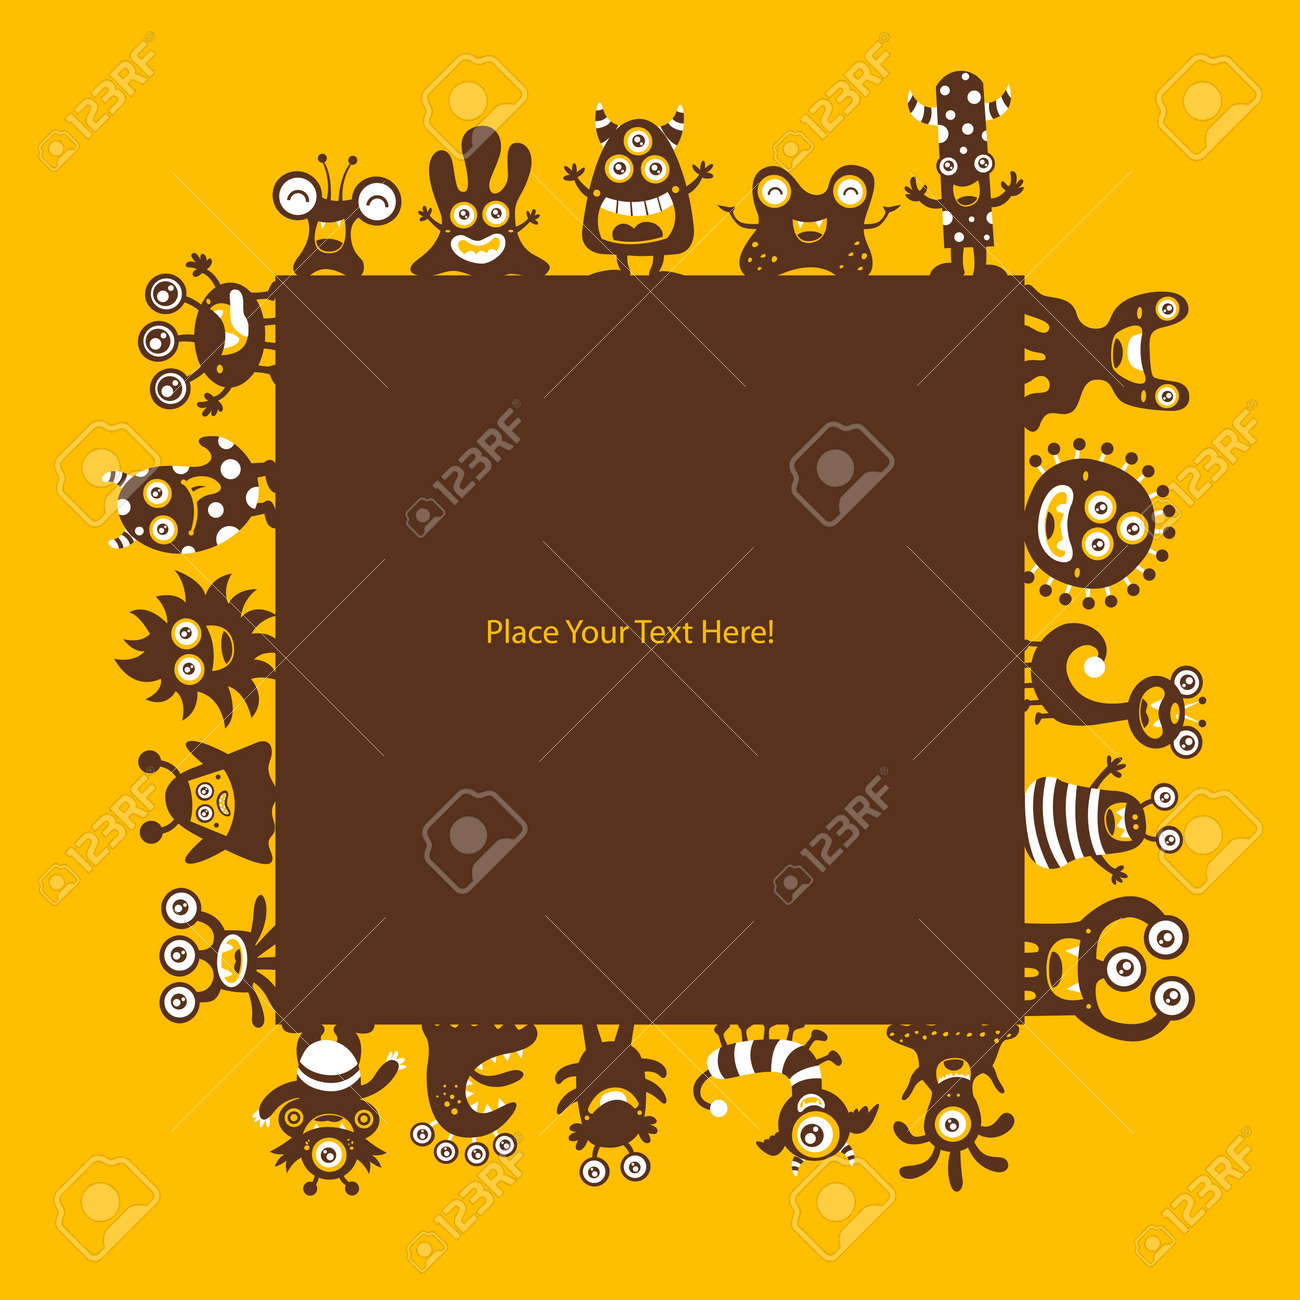 Cute Monsters Template Royalty Free Cliparts, Vectors, And Stock ...